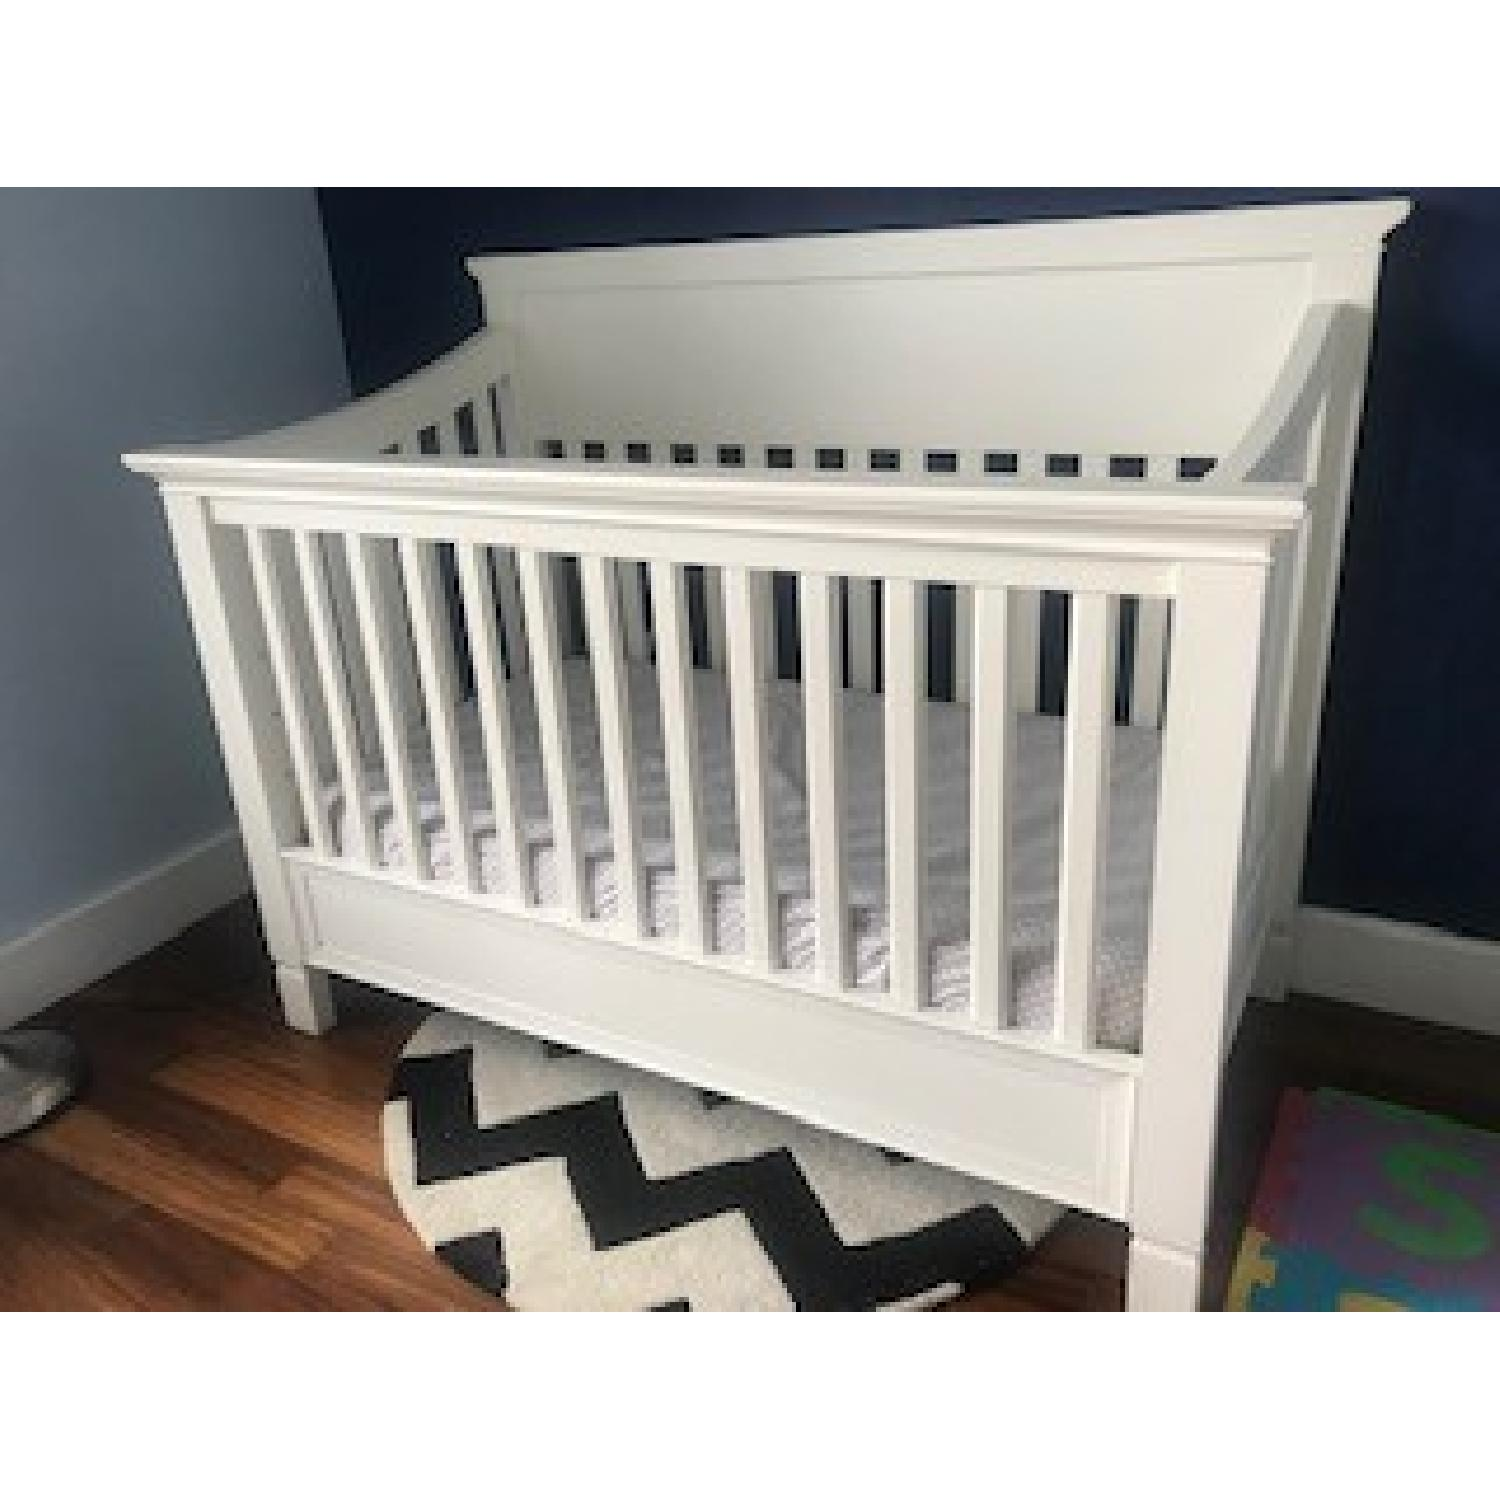 Pottery Barn Larkin 4-in 1 Crib-2